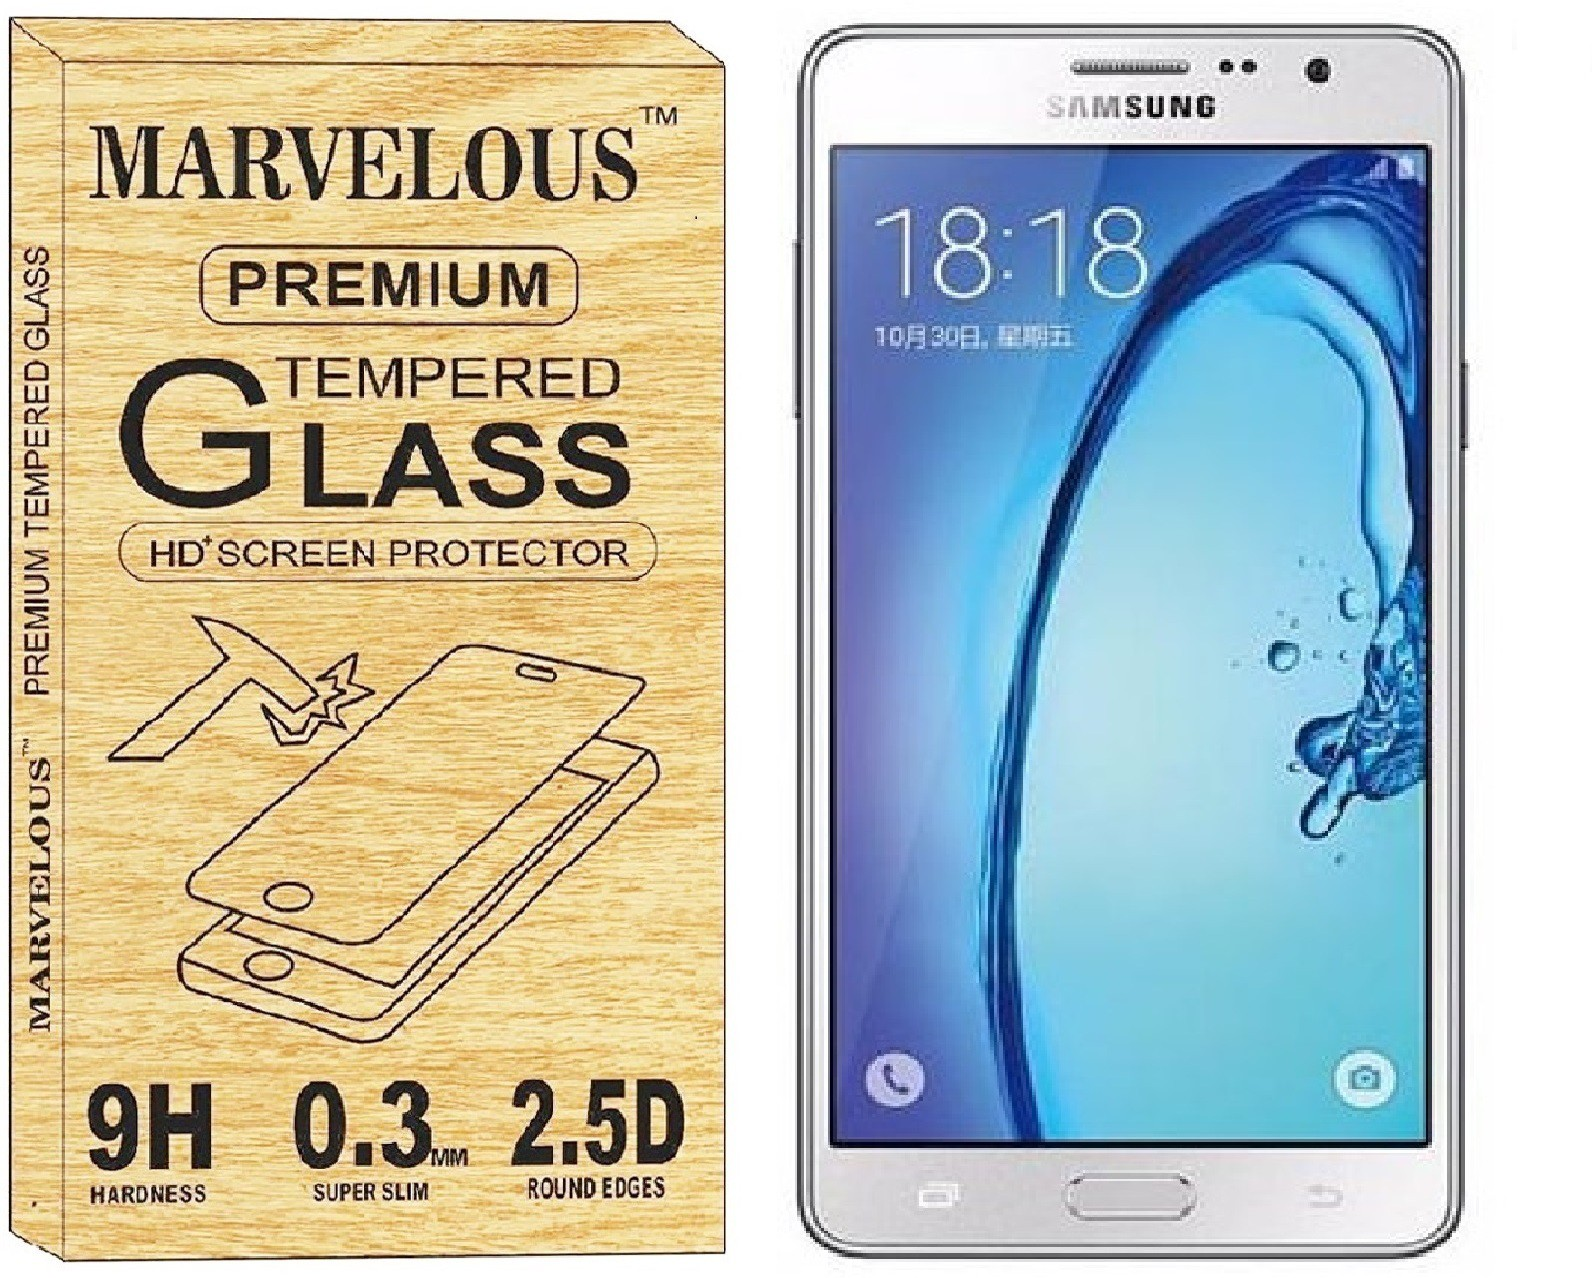 Marvelous Tempered Glass Guard for Samsung Galaxy On7 & On7 Pro